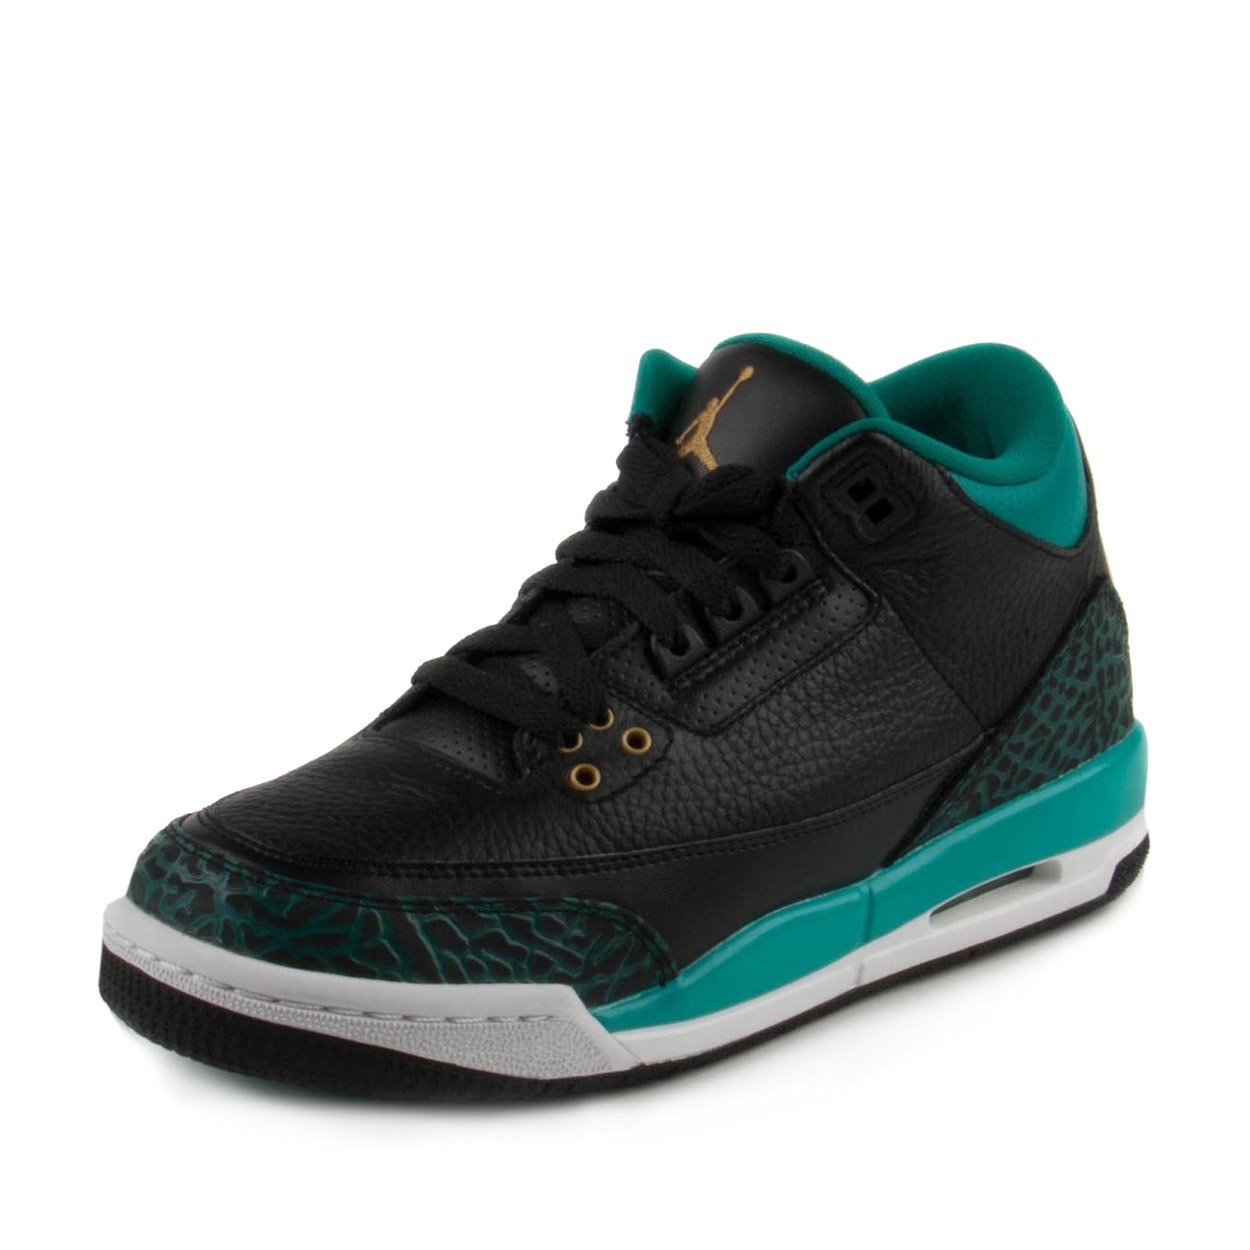 separation shoes 020dc e50c4 Galleon - Nike Youth Air Jordan 3 Retro GG 441140 018 Black Teal (8 M US  Big Kid)